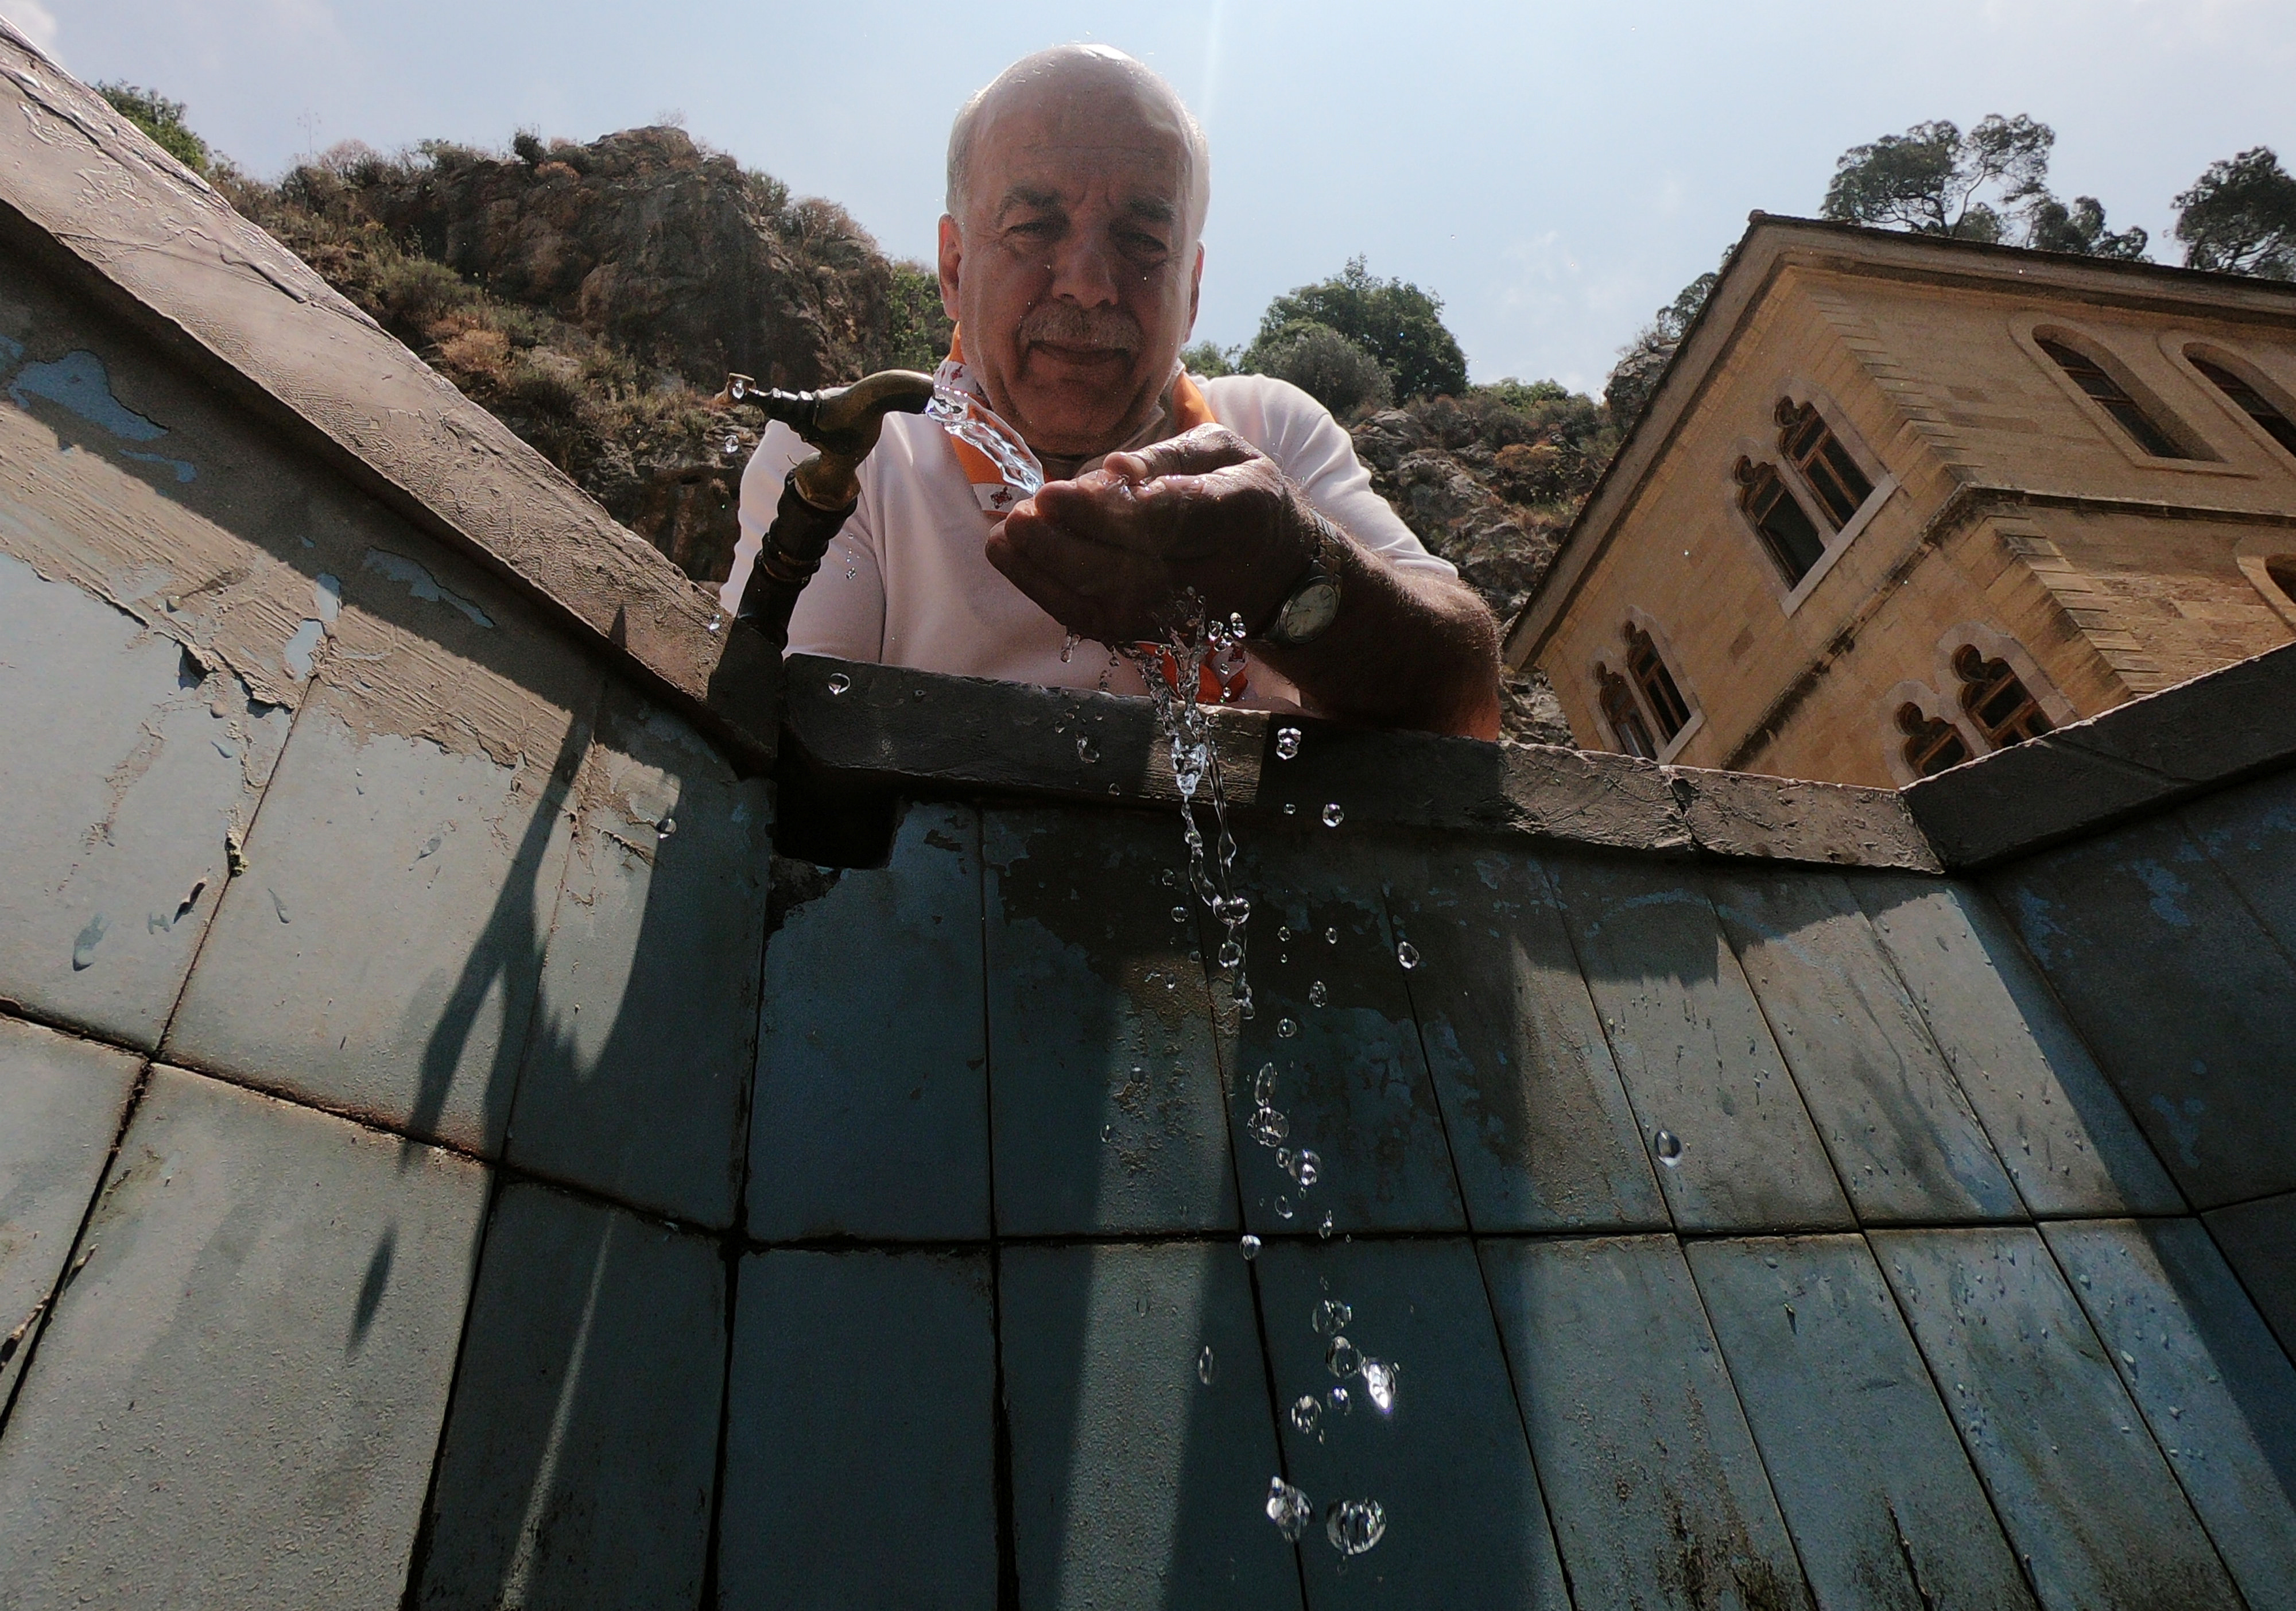 Samuel Botros drinks water at the Monastery of Saint Anthony of Qozhaya in the heart of the Qadisha valley, in Zgharta district, Lebanon June 23, 2019. Picture taken June 23 , 2019. REUTERS/Imad Creidi